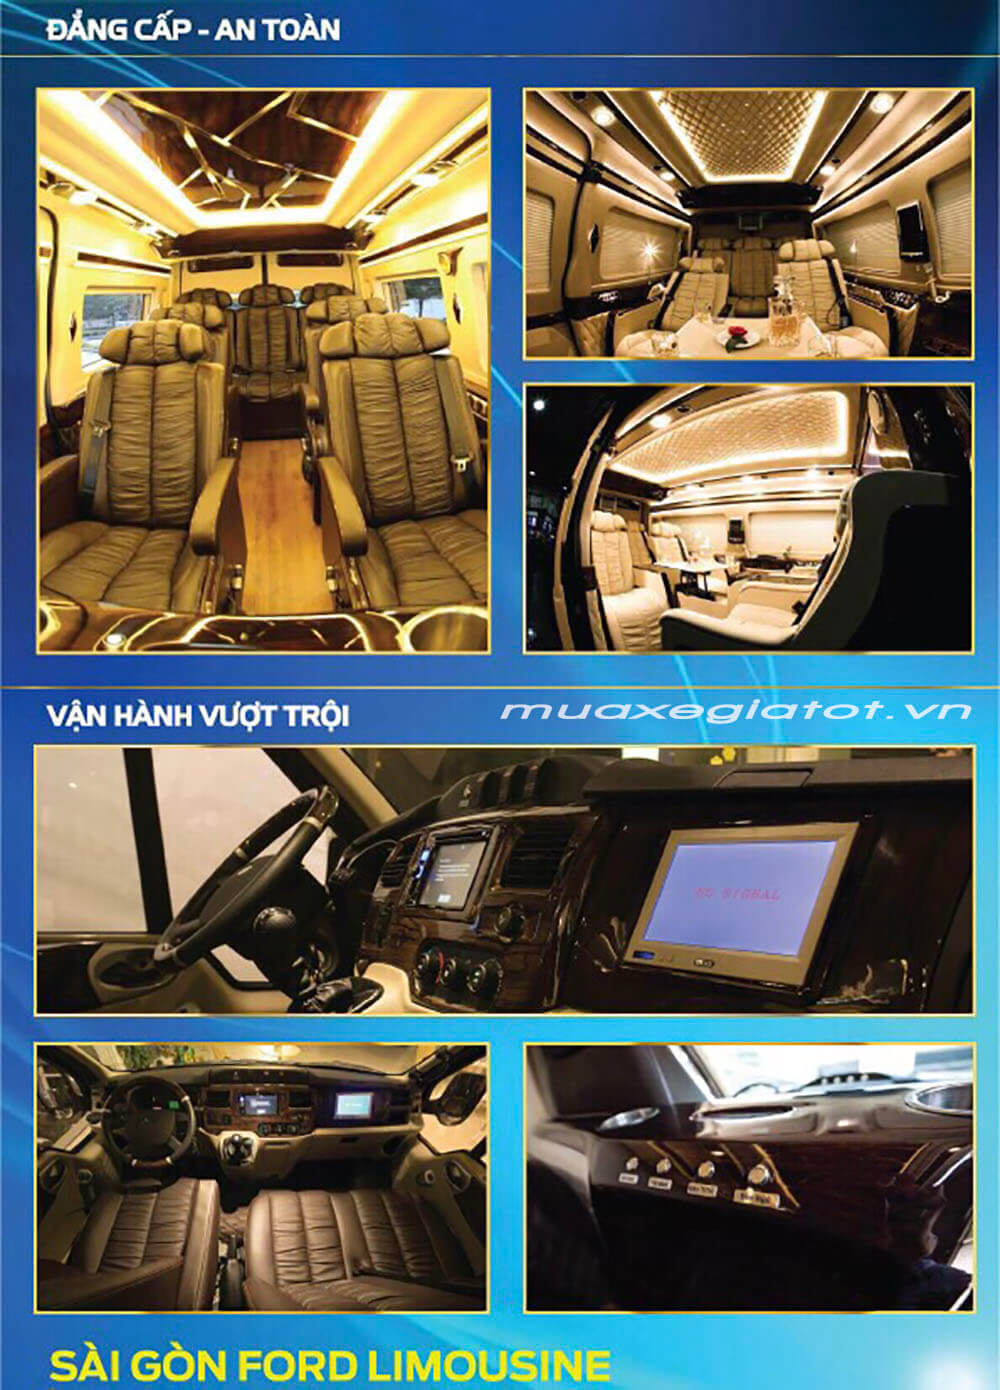 catalogue-xe-ford-transit-limousine-muaxegiatot-vn-6